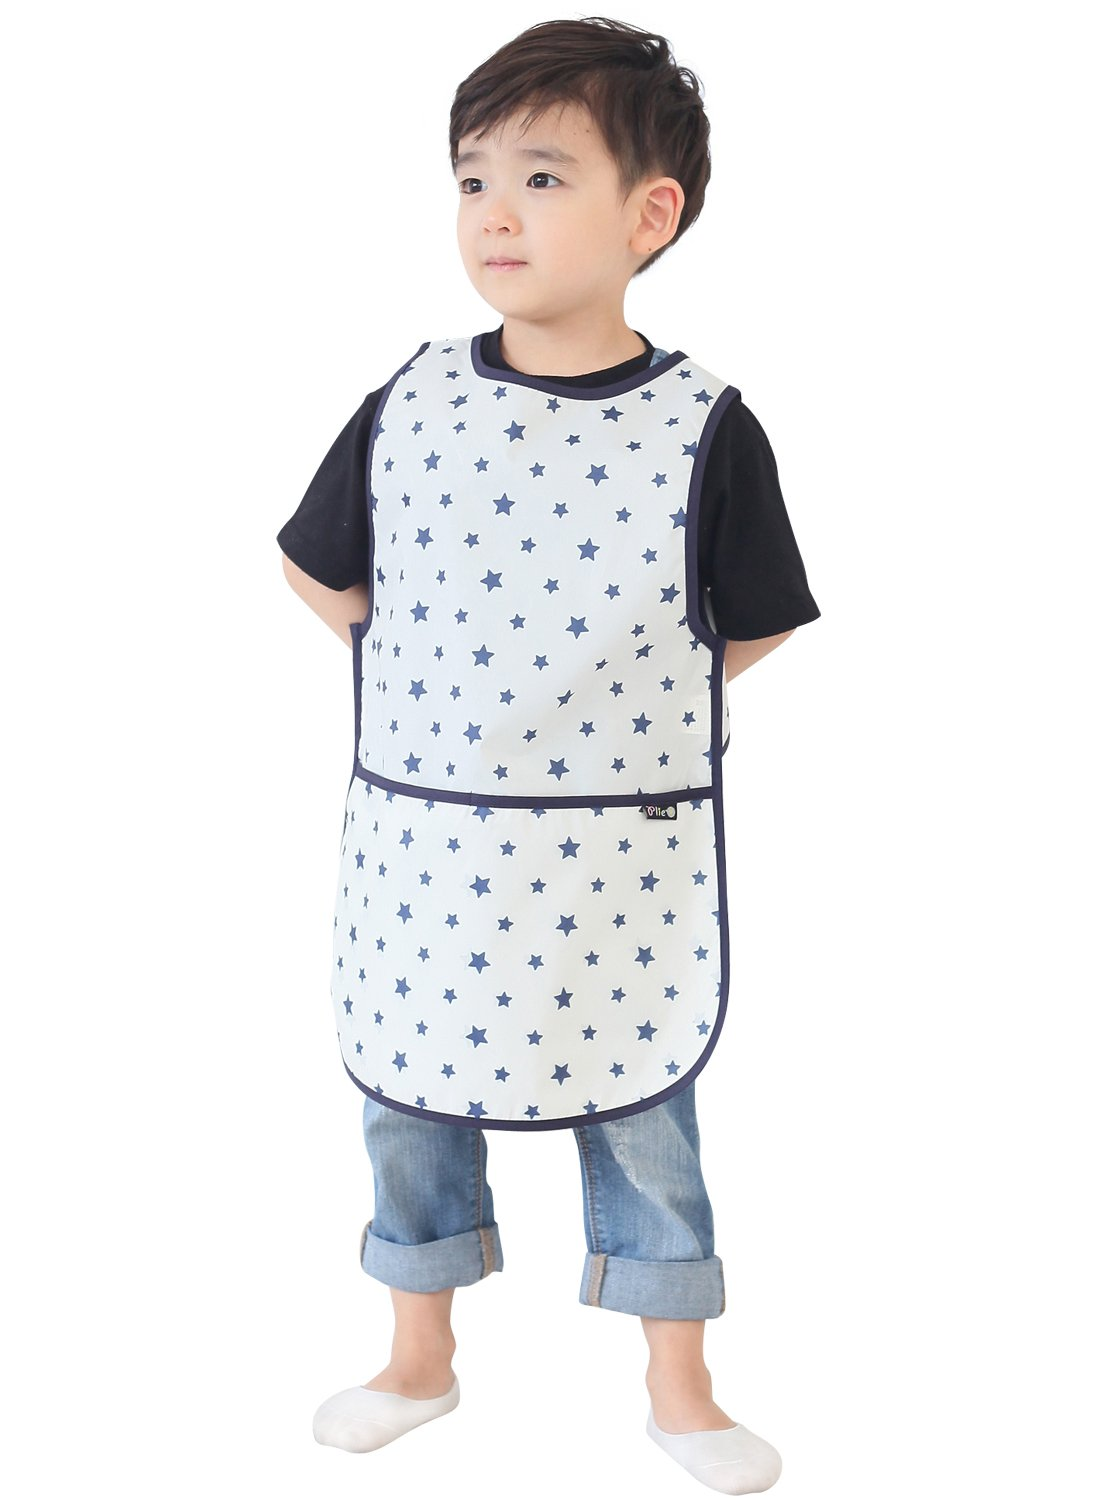 Plie Children Waterproof Sleeveless Art Smock Apron with Pockets, Pink Ribbon (39-M) MIN01-39-M